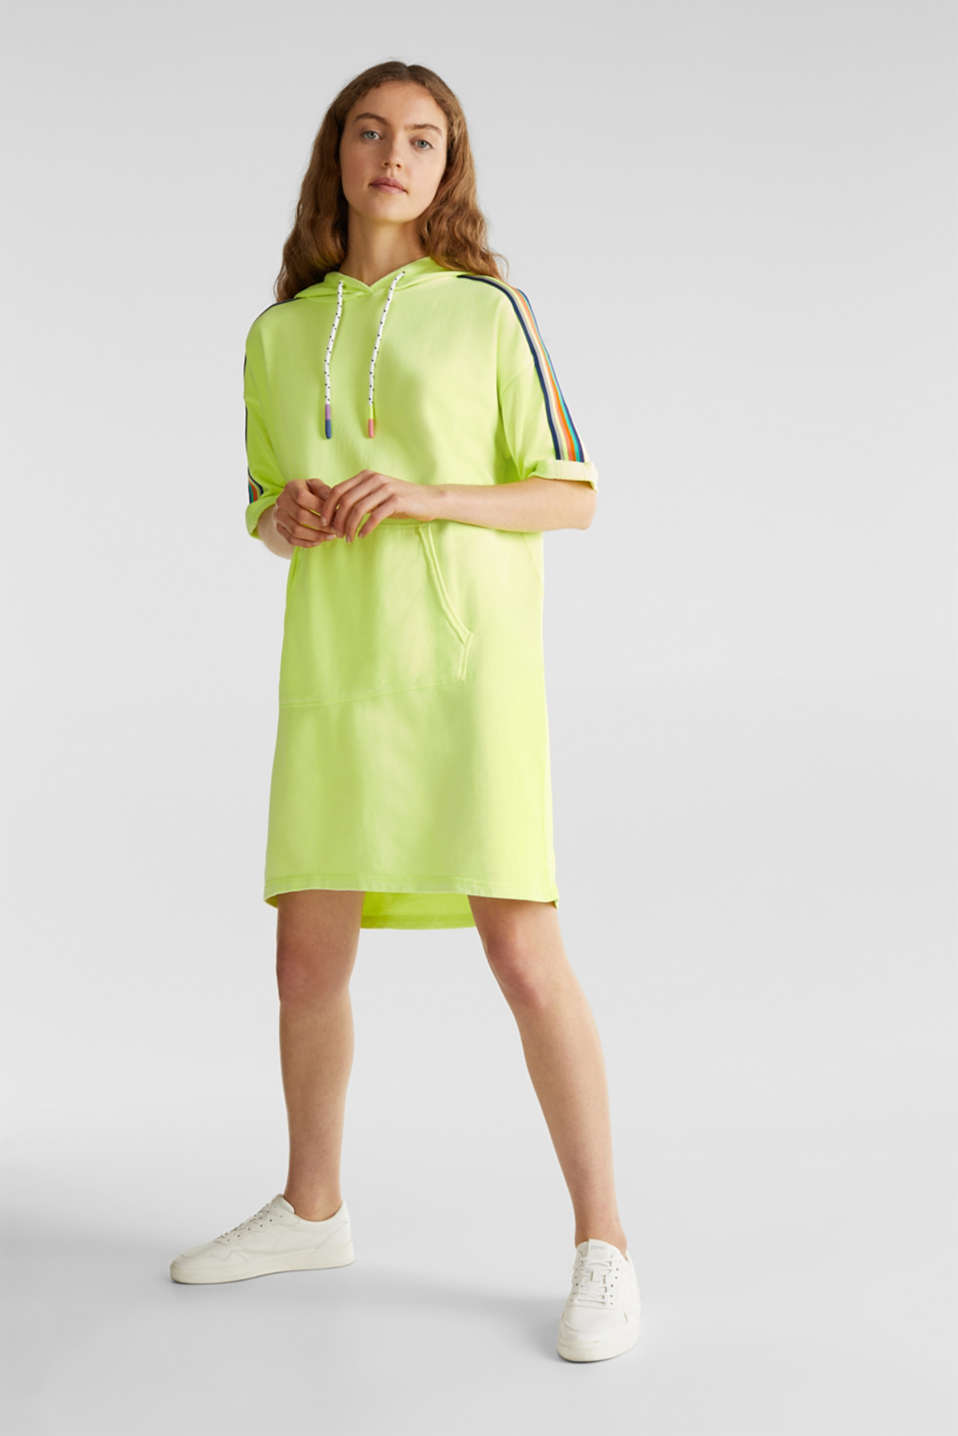 NEON sweatshirt dress with stripes, 100% cotton, LIME YELLOW, detail image number 1